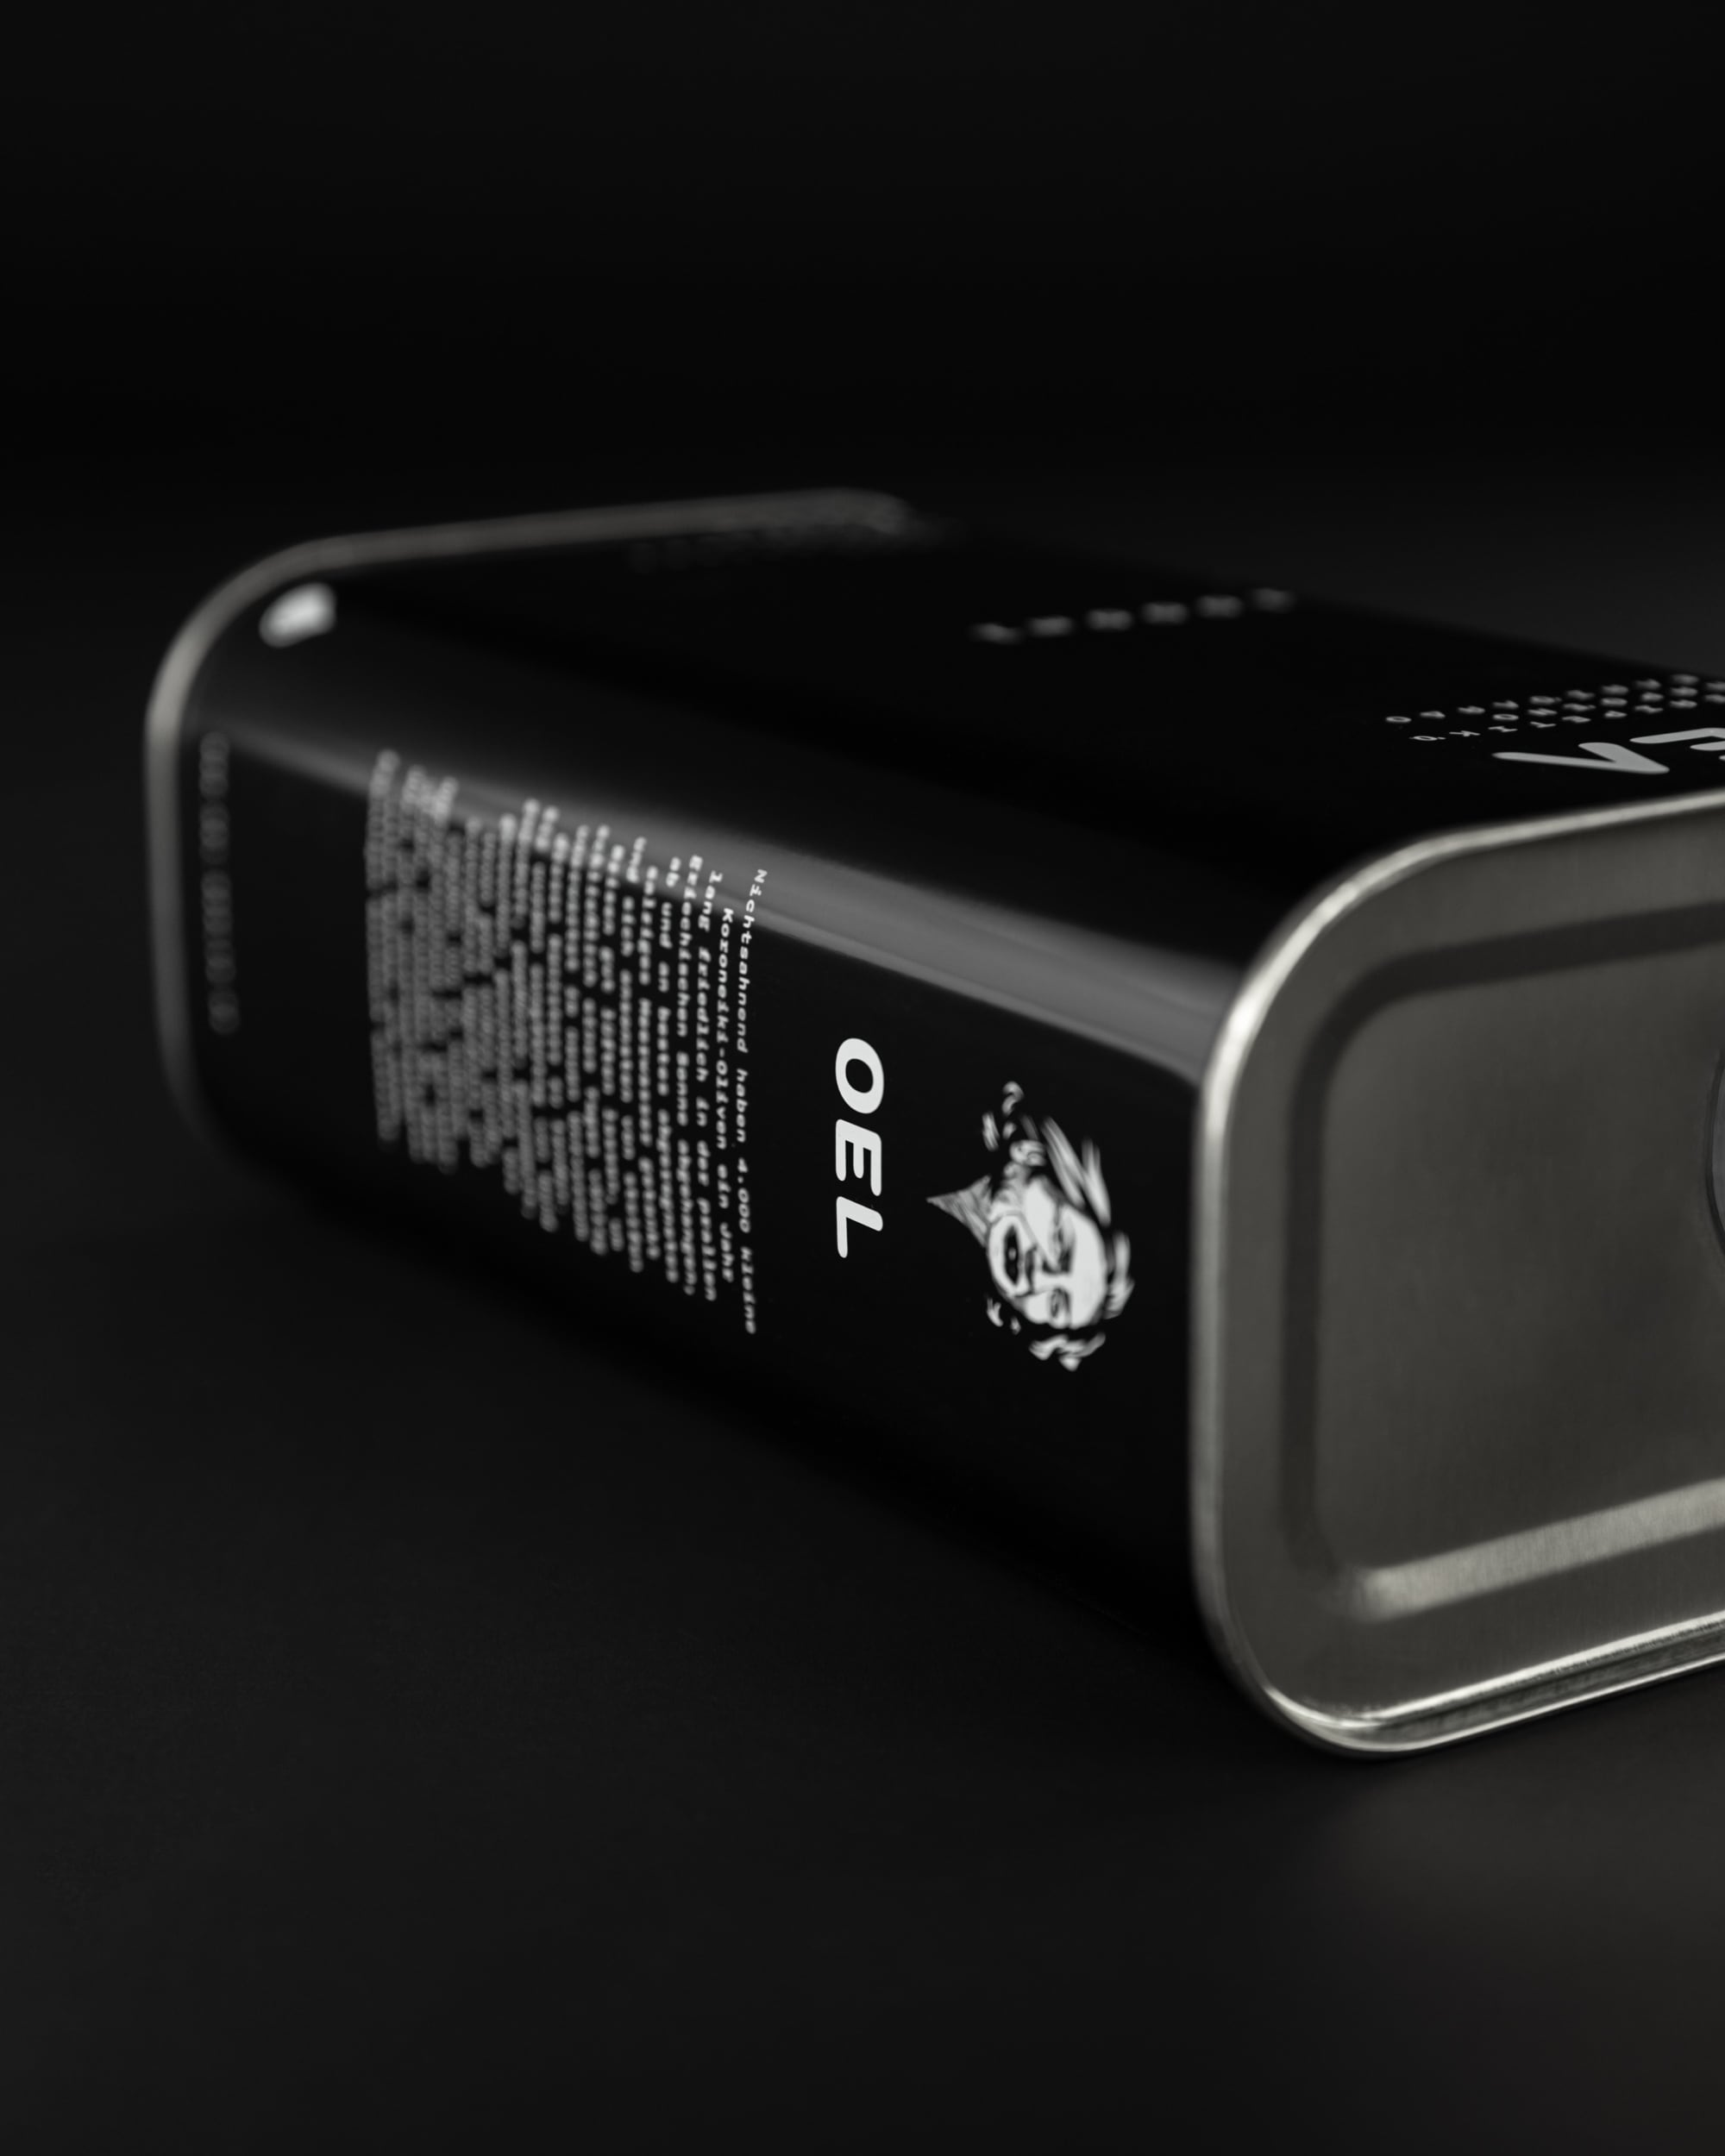 1000ml OEL canister lying on a black background.